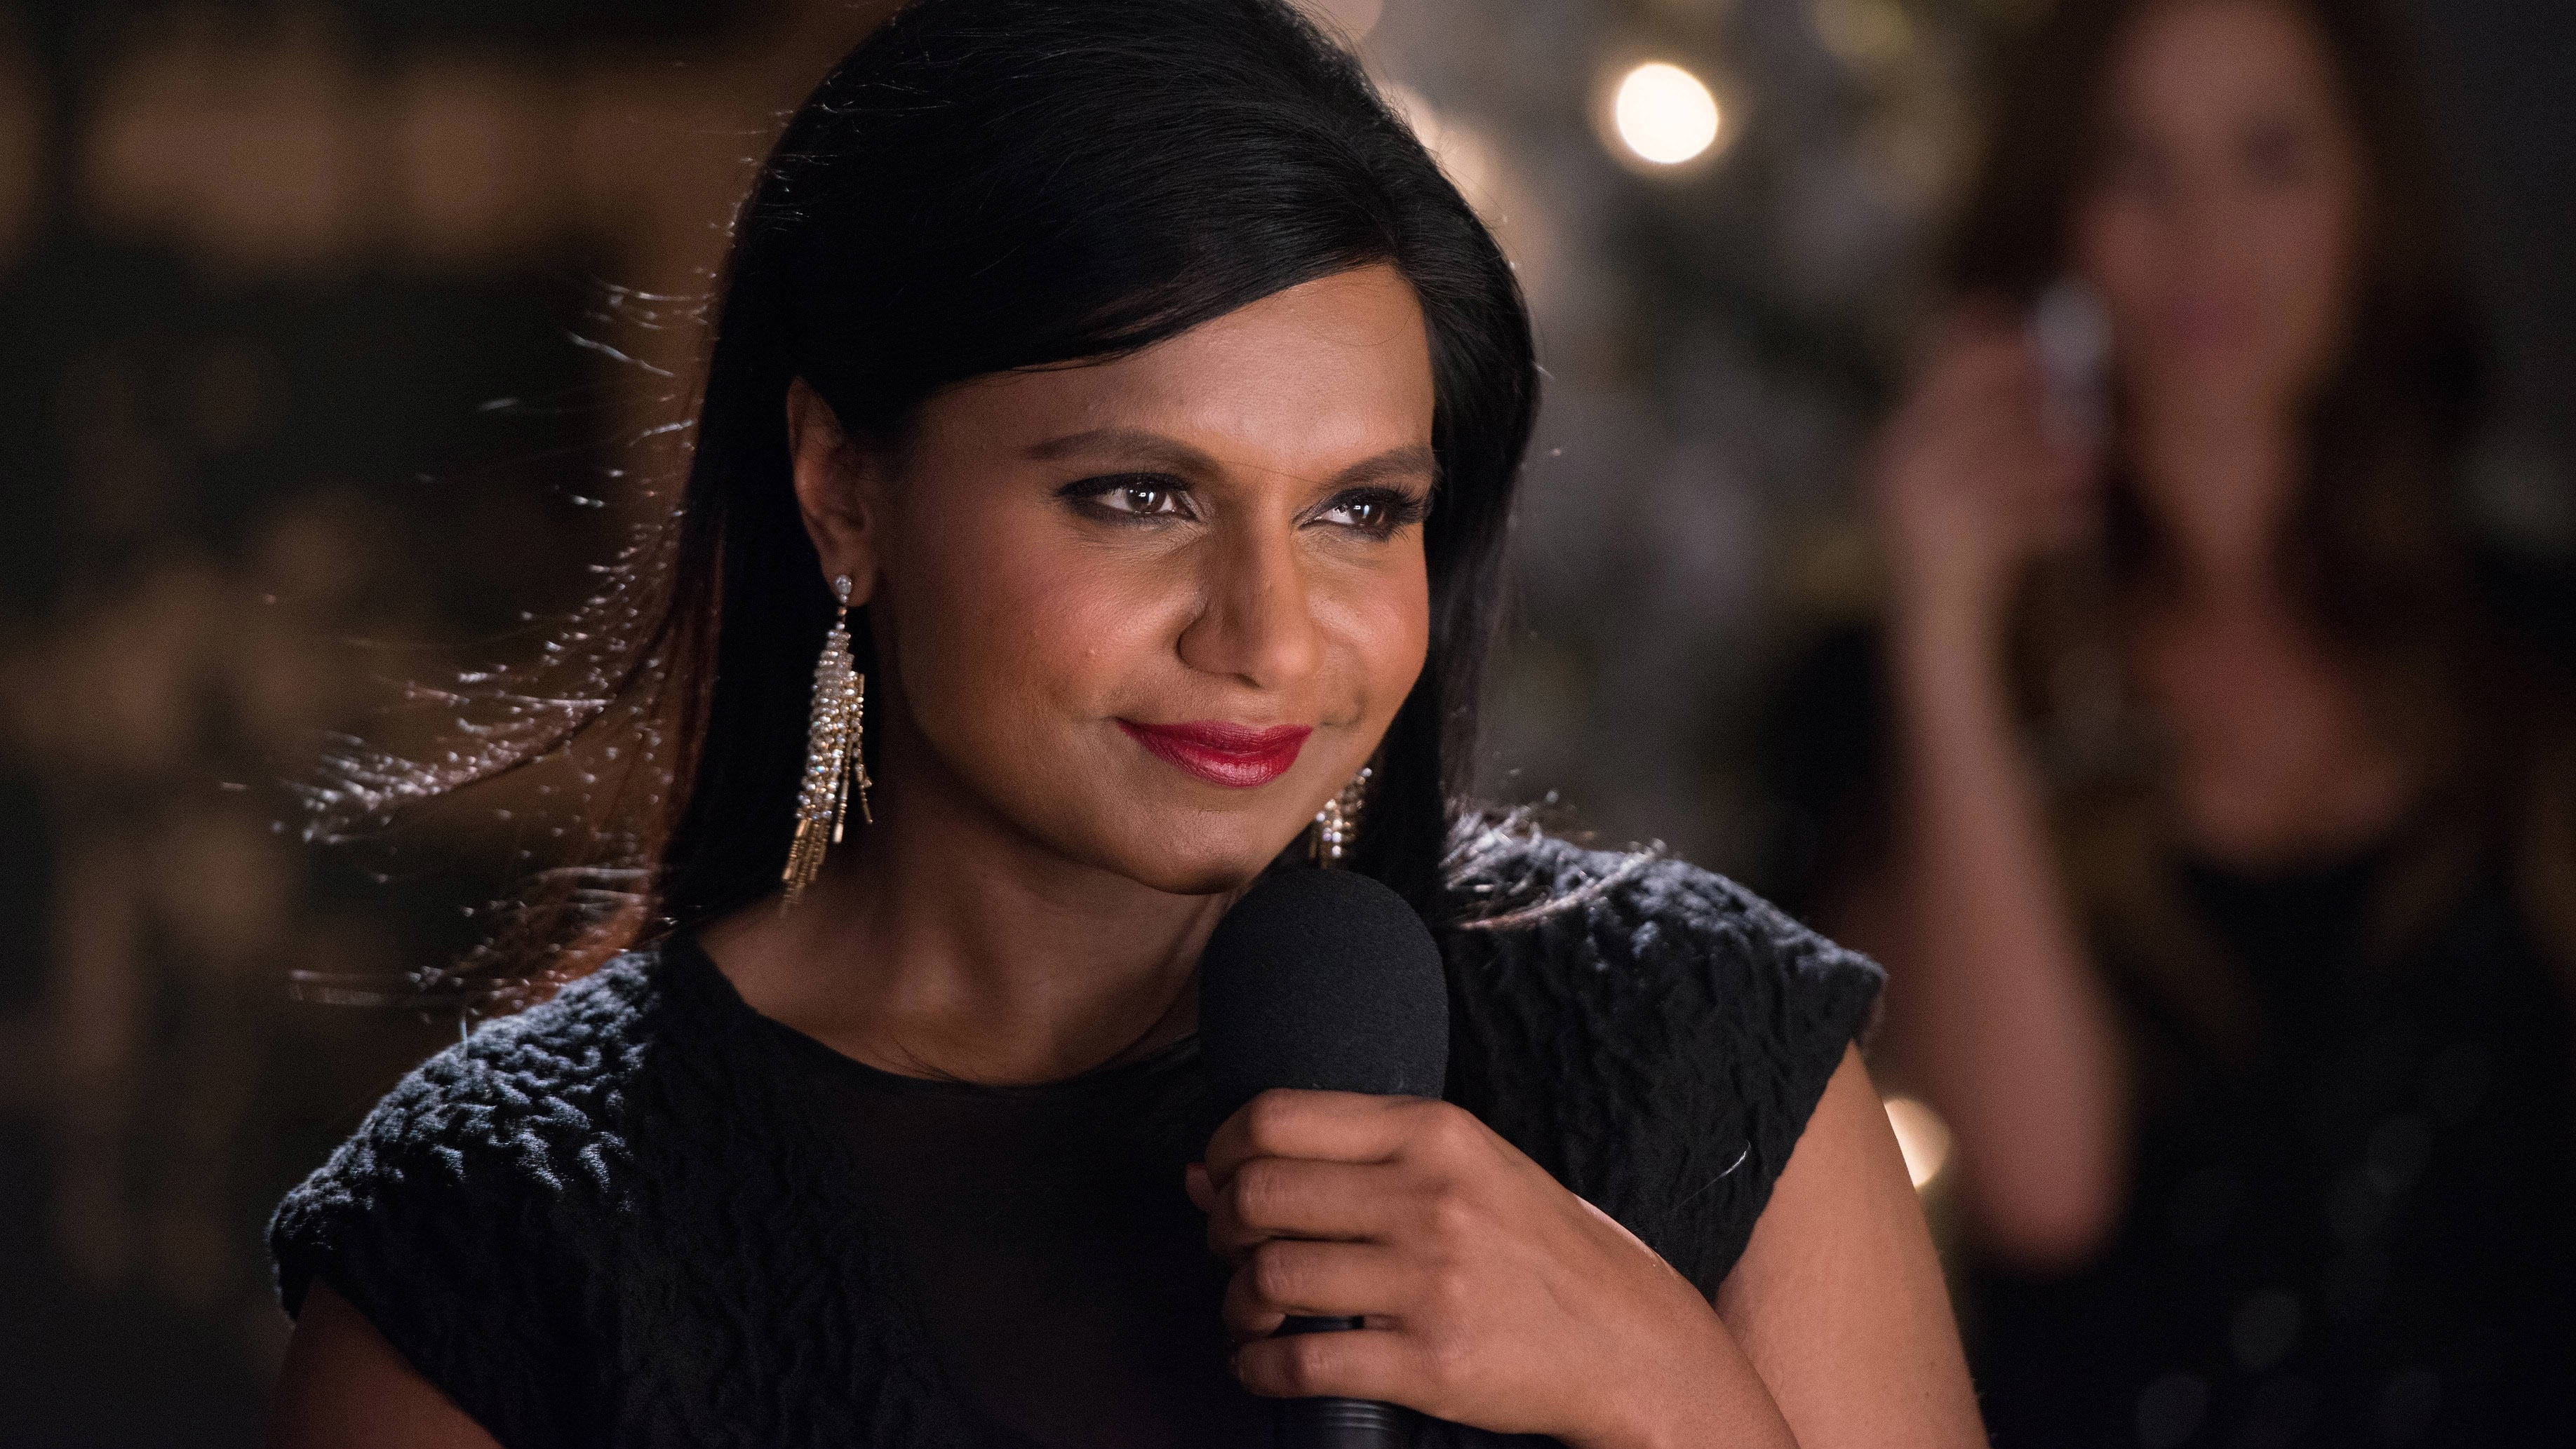 watch The Mindy Project Season 2 Episode 11 online free